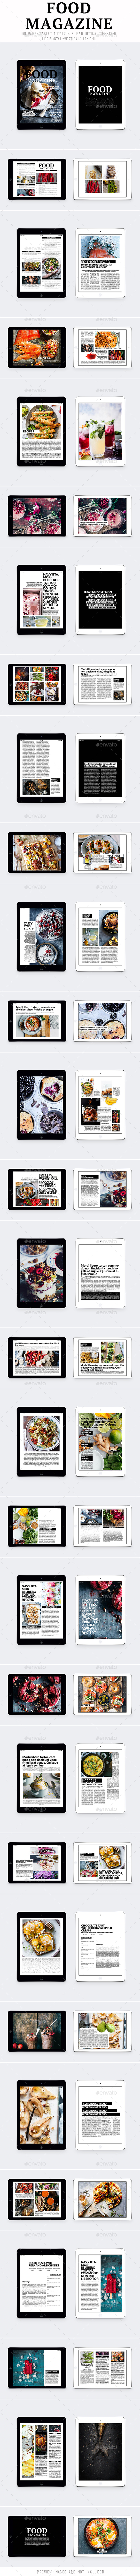 Ipad&Tablet Food Magazine - Digital Magazines ePublishing